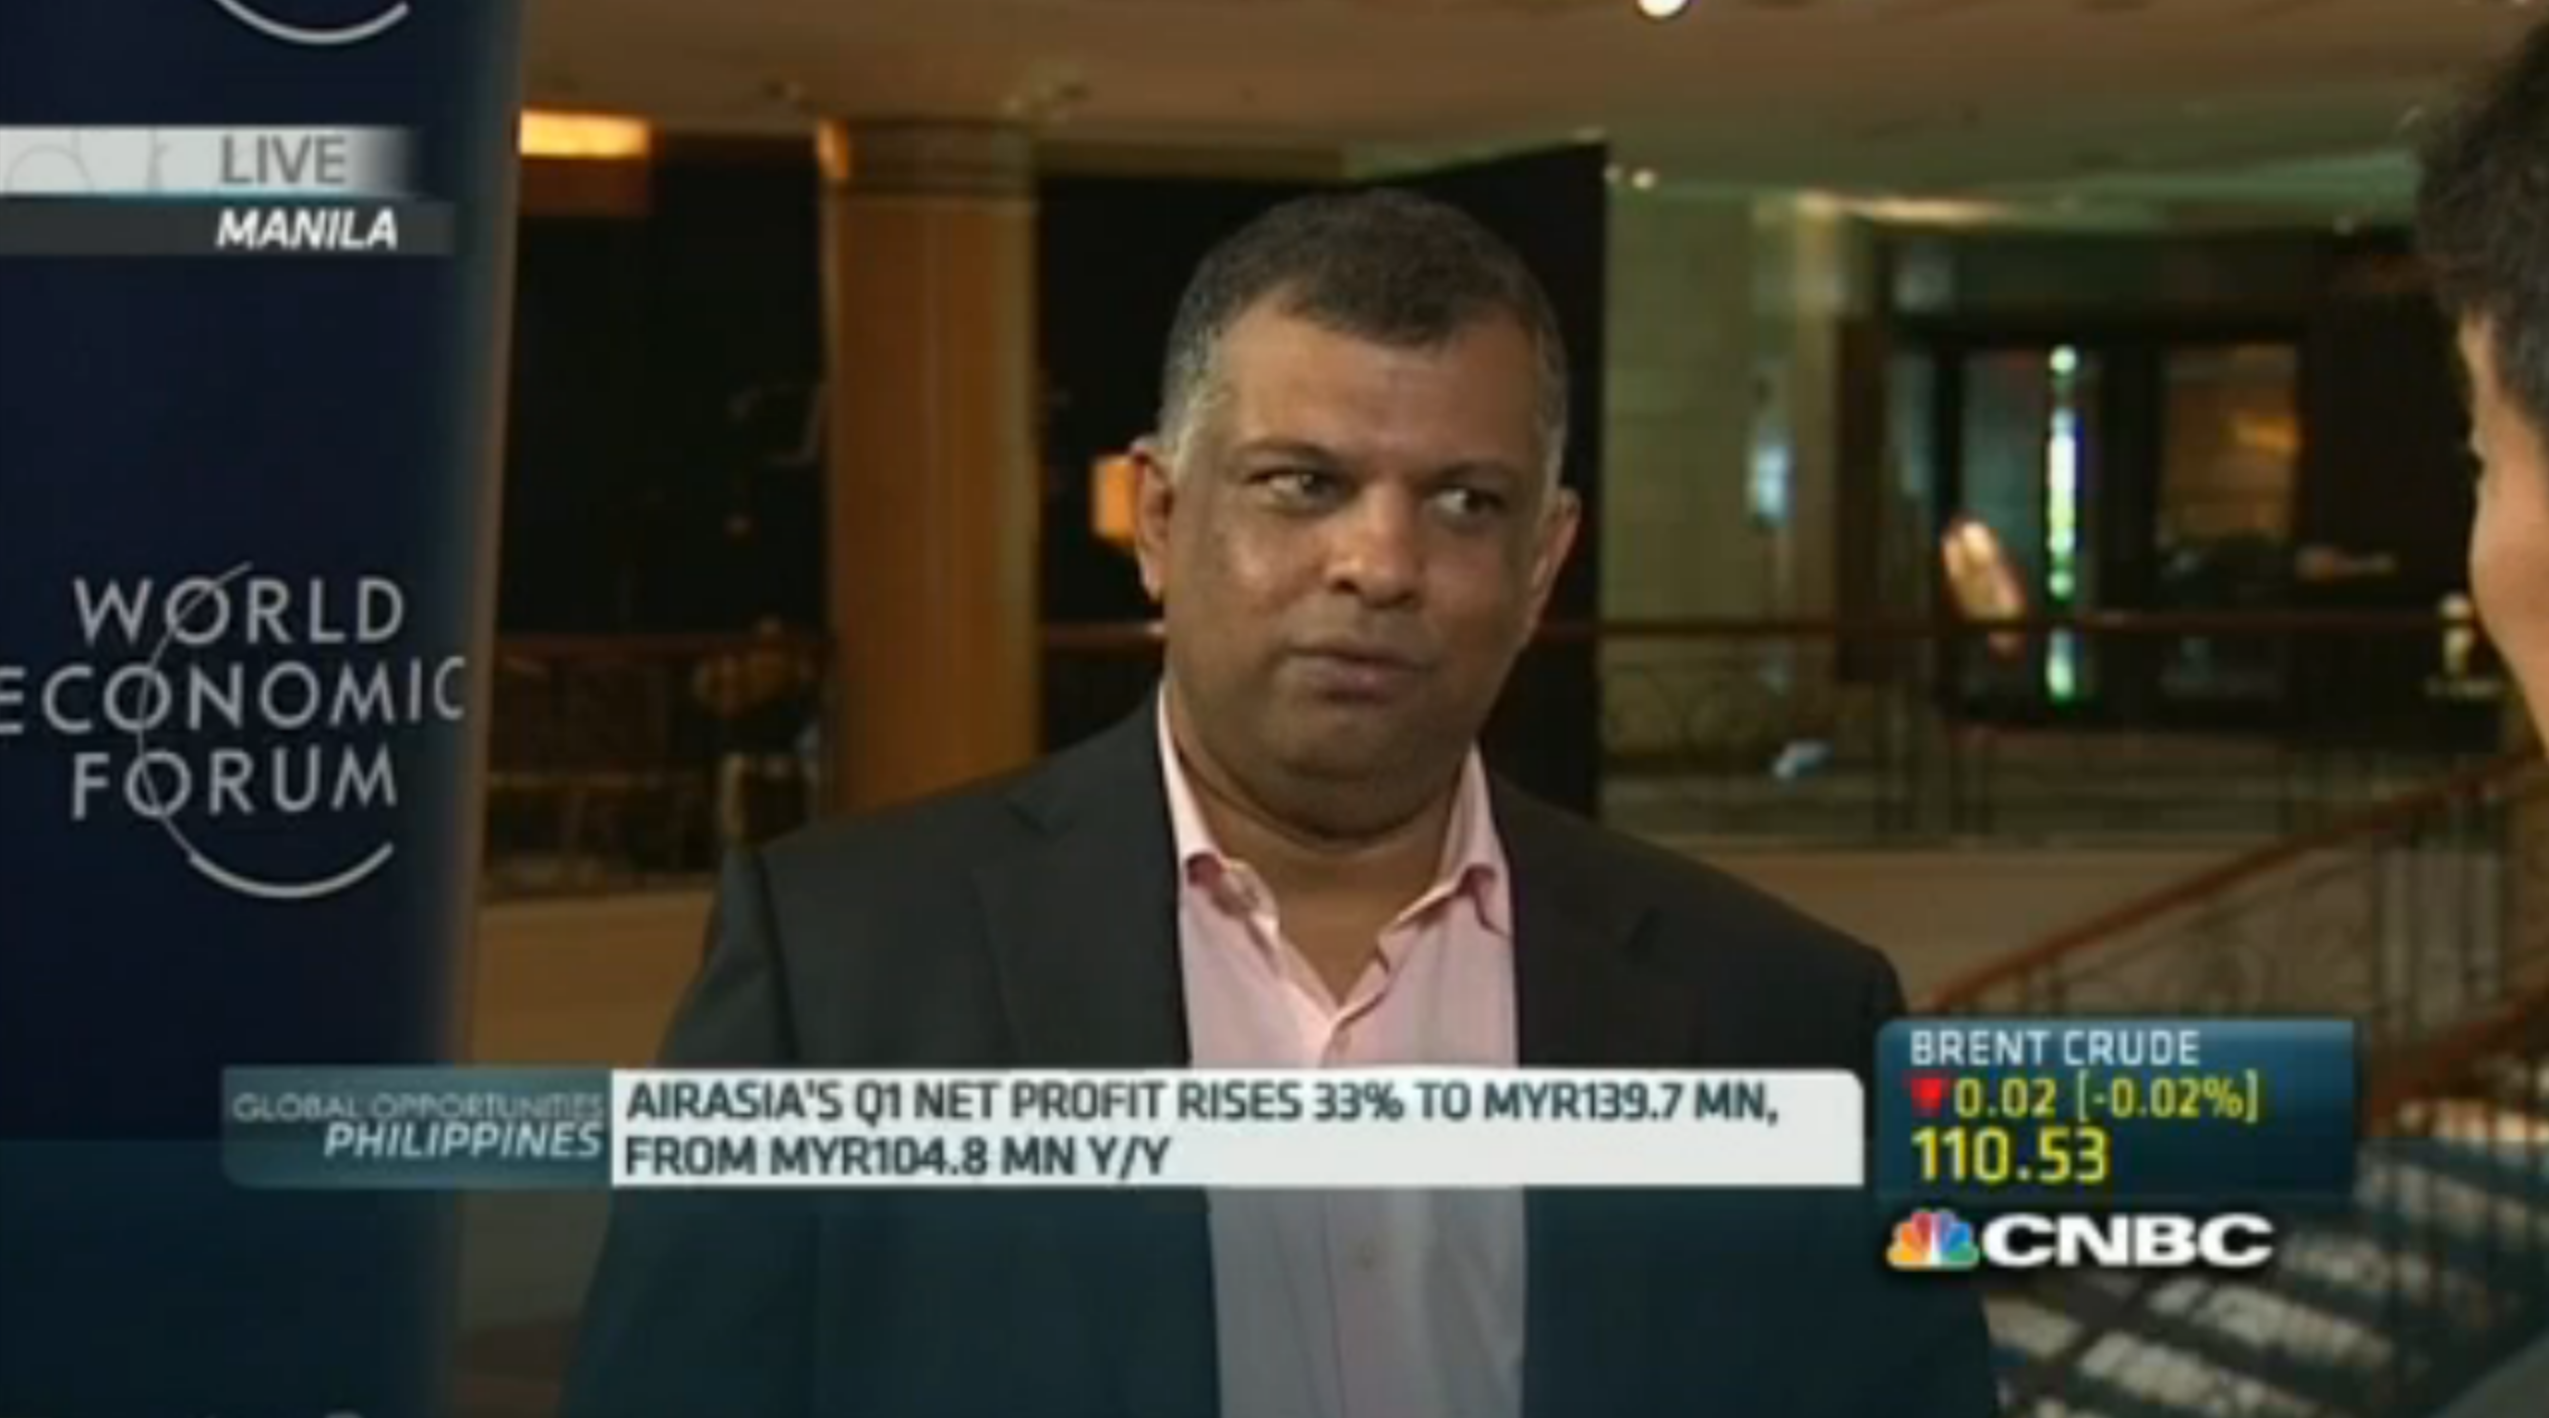 Air Asia: How Asean Economic Community will help